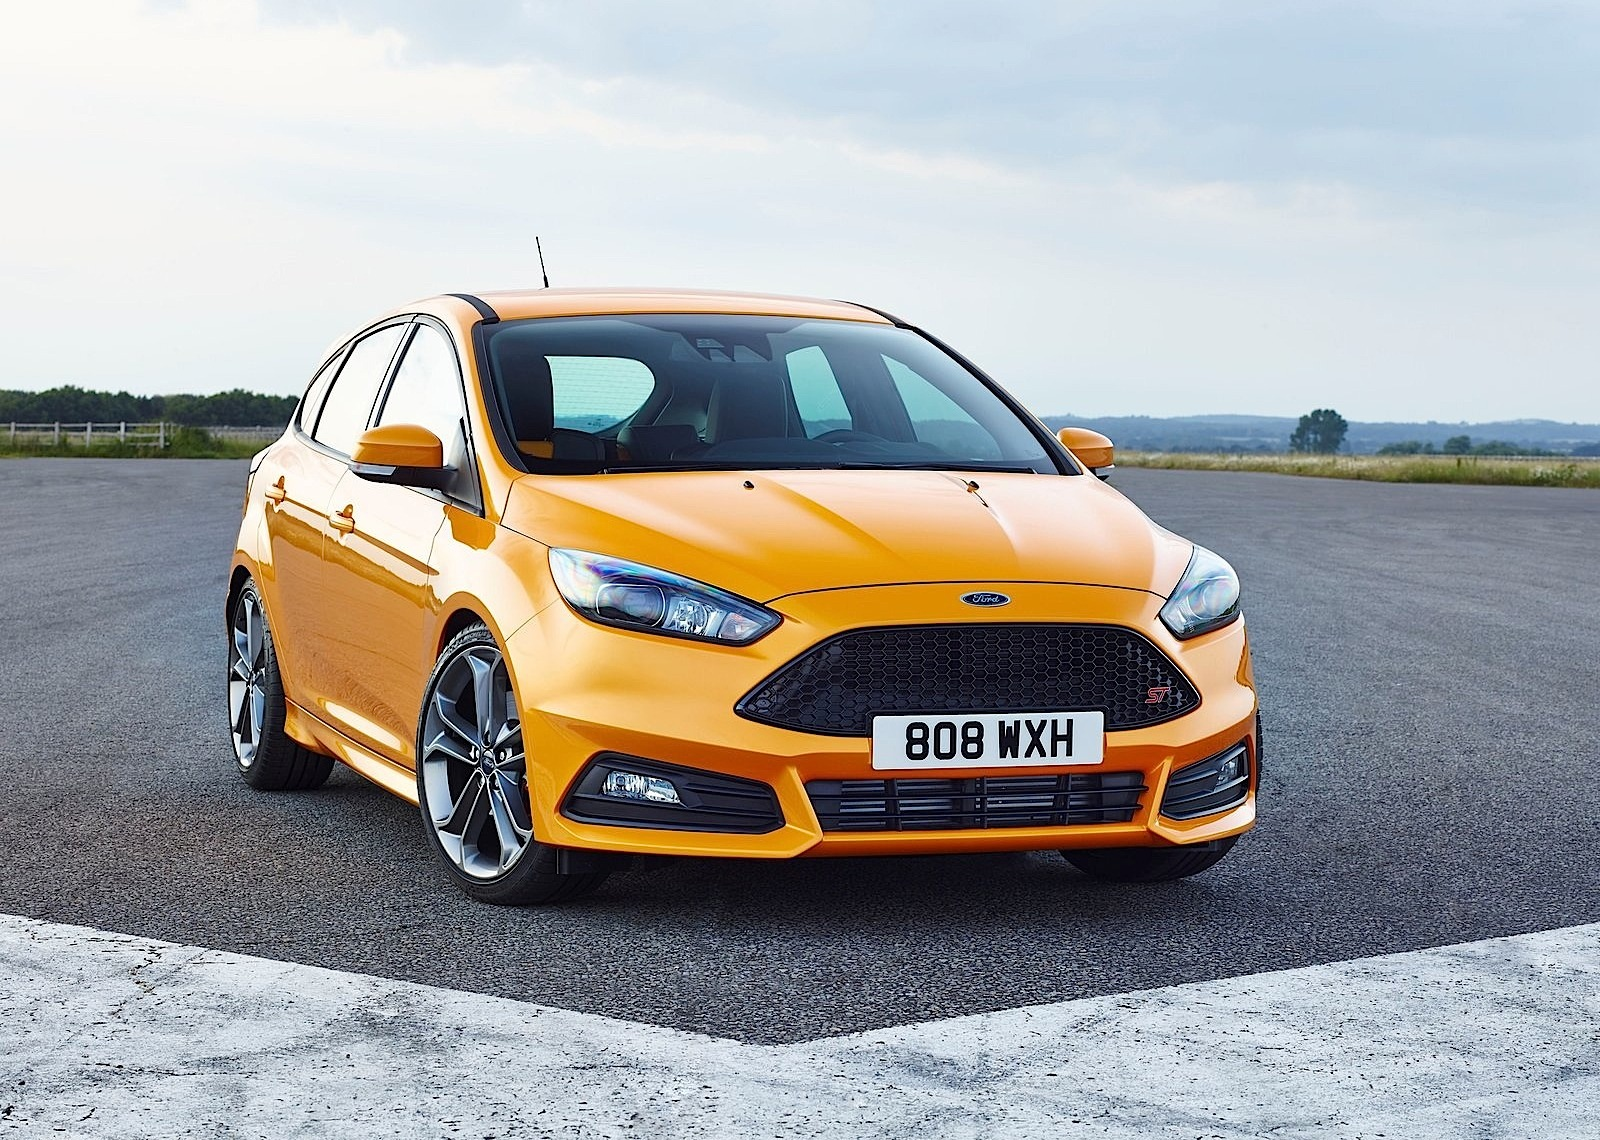 Ford Focus St 5 Doors Specs Photos 2014 2015 2016 2017 2018 Lights